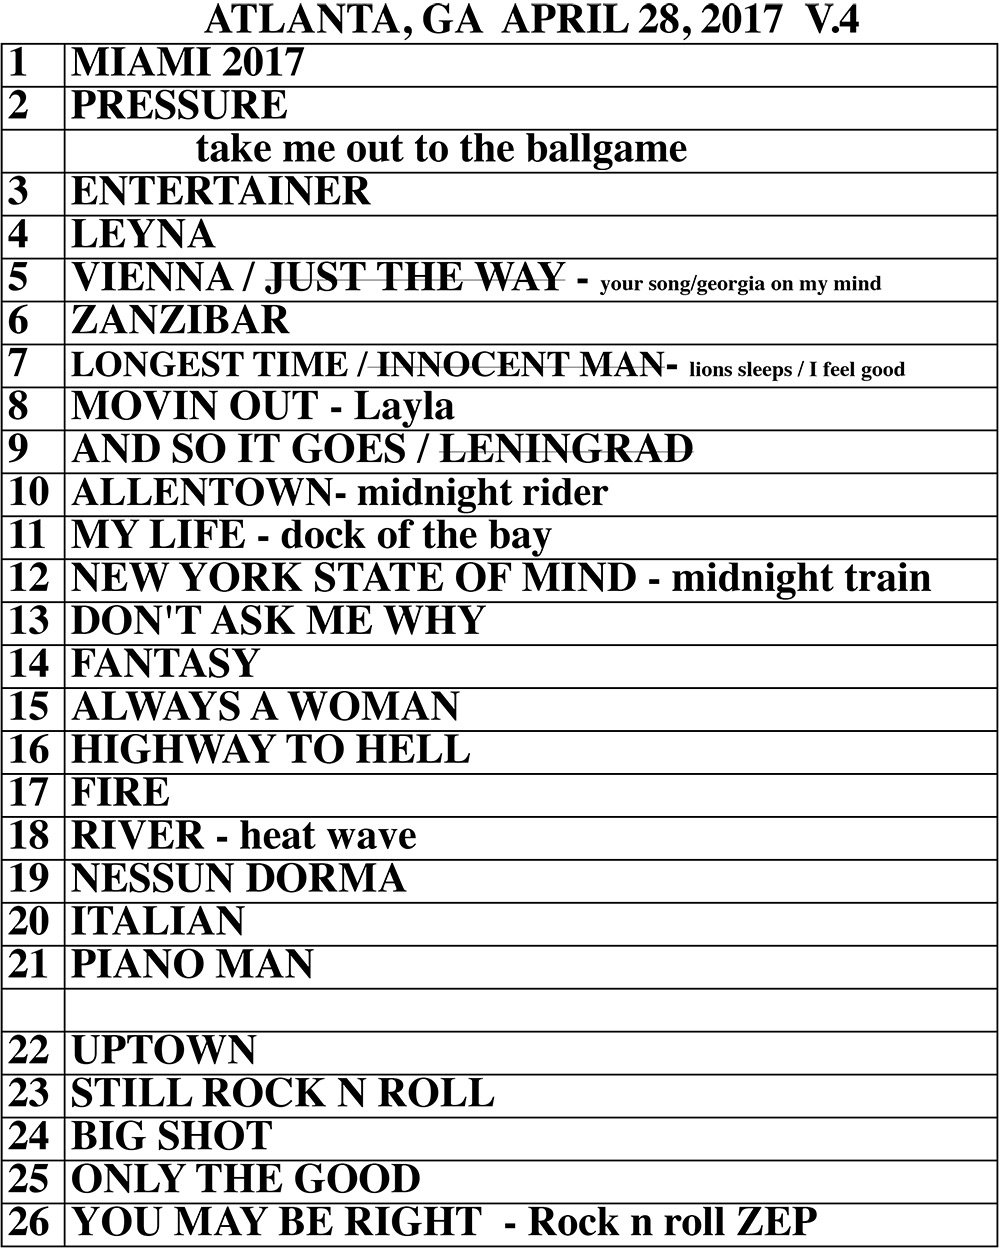 Set list from Billy Joel SunTrust Park Atlanta, GA concert April 28, 2017